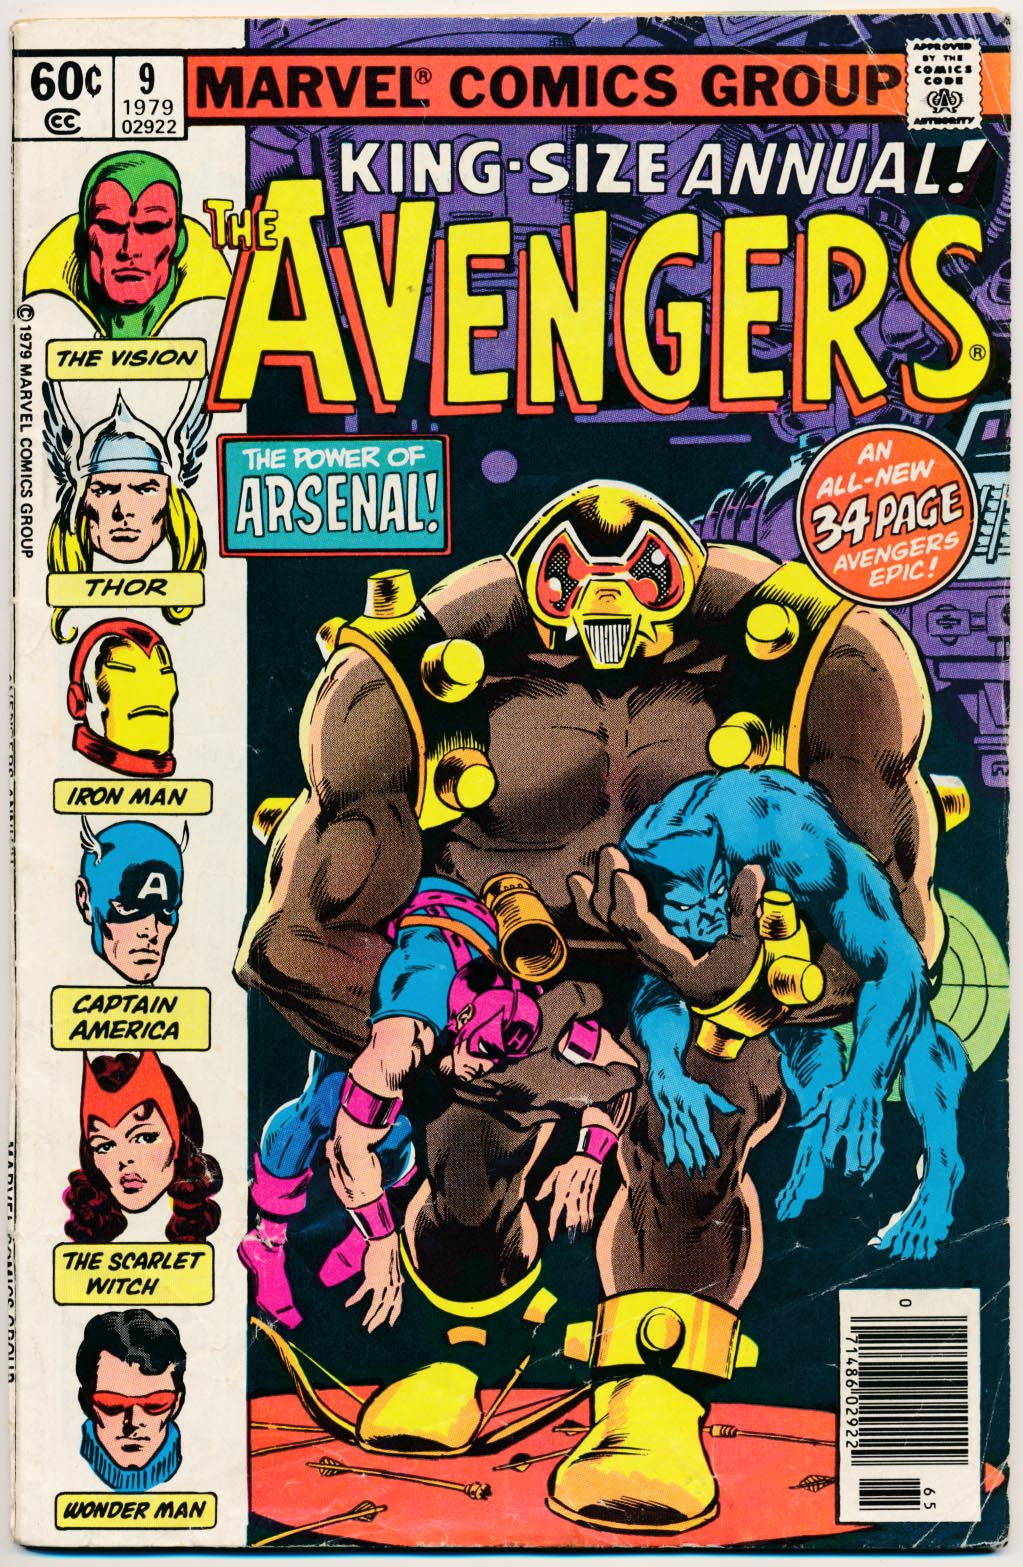 Avengers King-Size Annual 9 -G